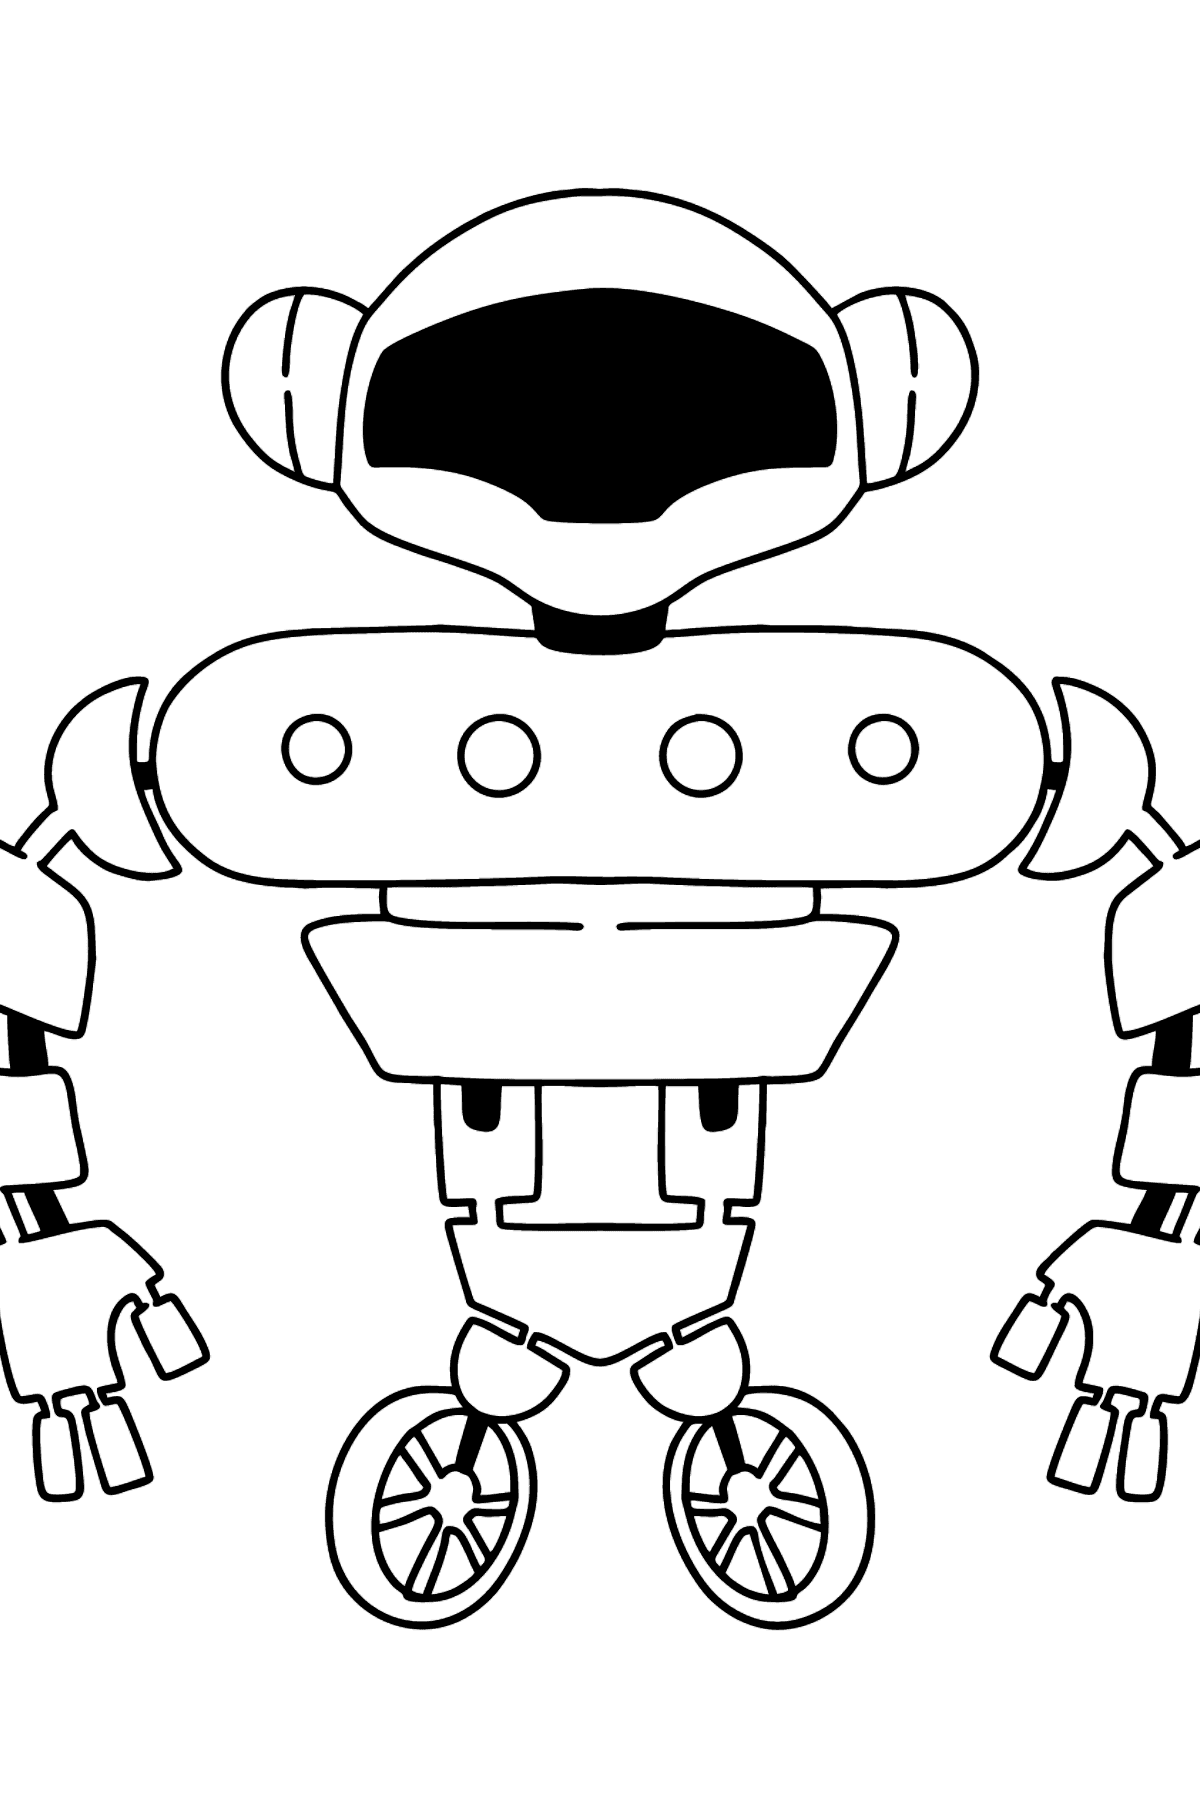 Cute Robot coloring page - Coloring Pages for Kids